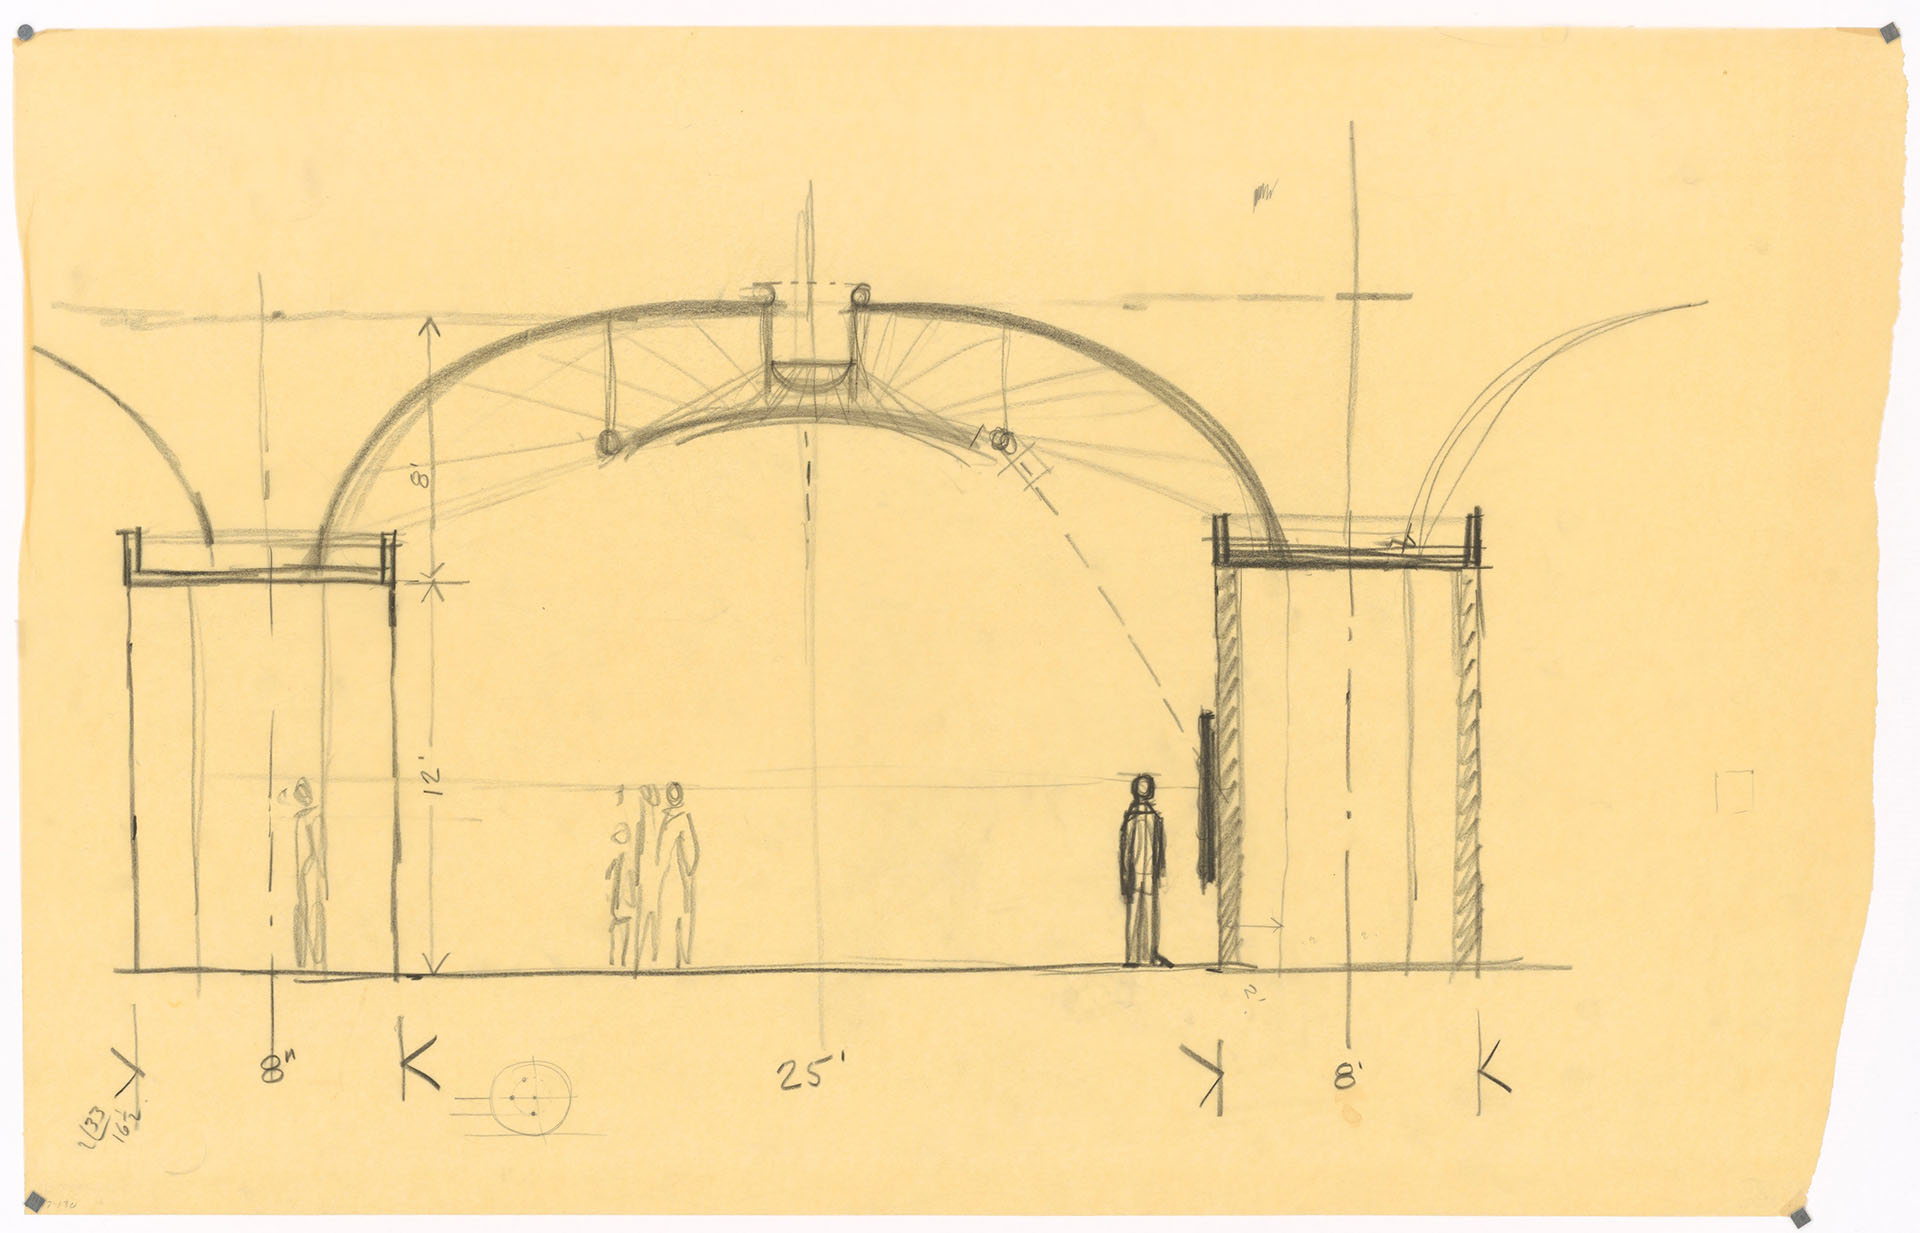 Early sectional sketch of the cycloid shells by Louis Kahn - Kimbell Art Museum (Fort Worth, Texas, USA) - architect Louis Kahn, structural consultant August Komendant | Miracles in Concrete | Louis I Kahn | STIRworld